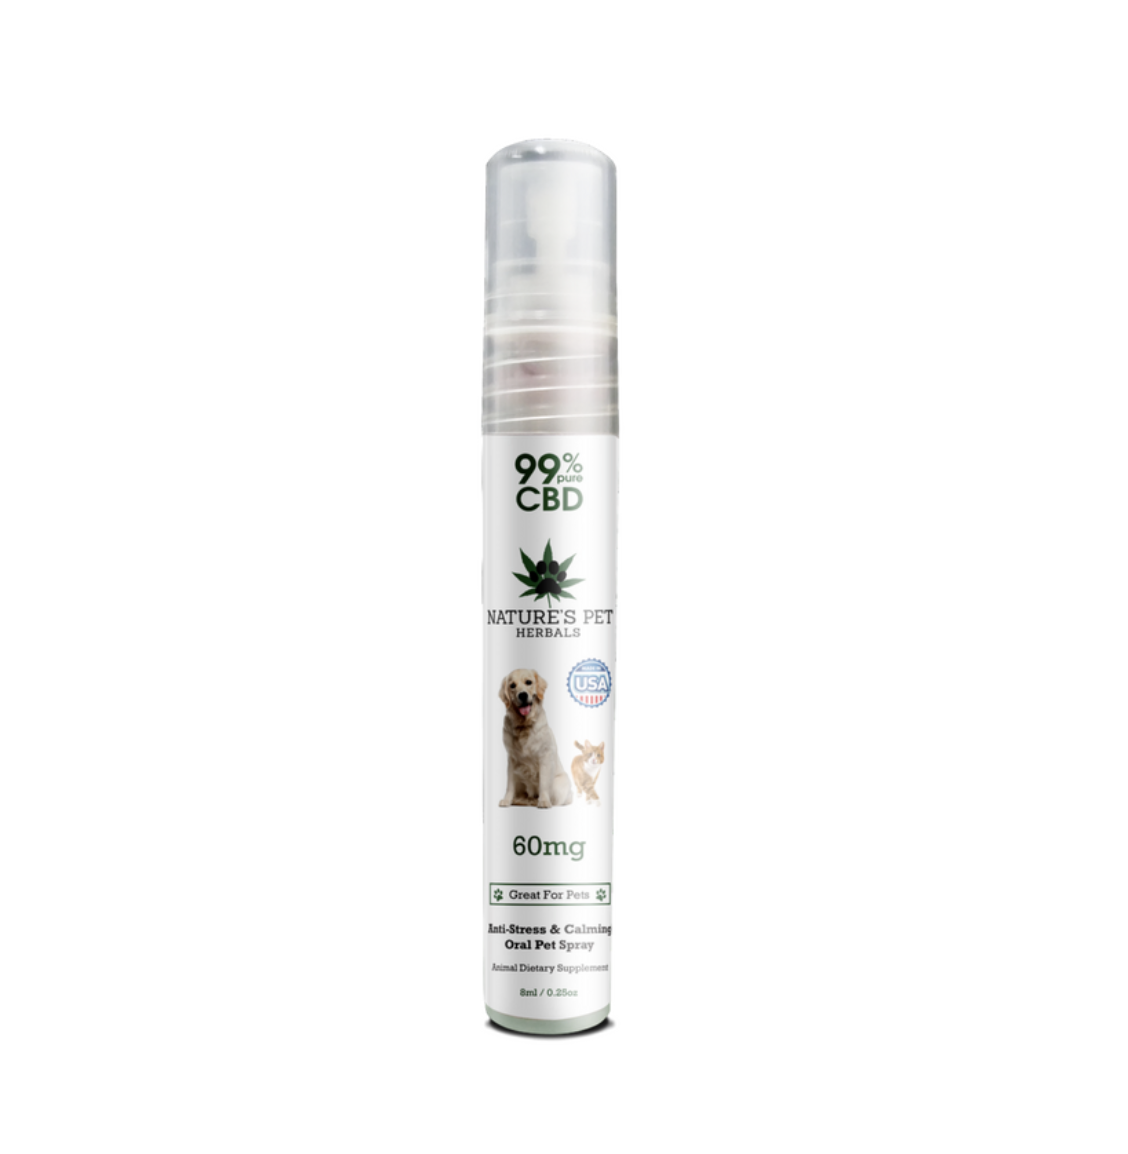 Nature's Pet Herbals CBD Pet Oil Spray for Anxiety